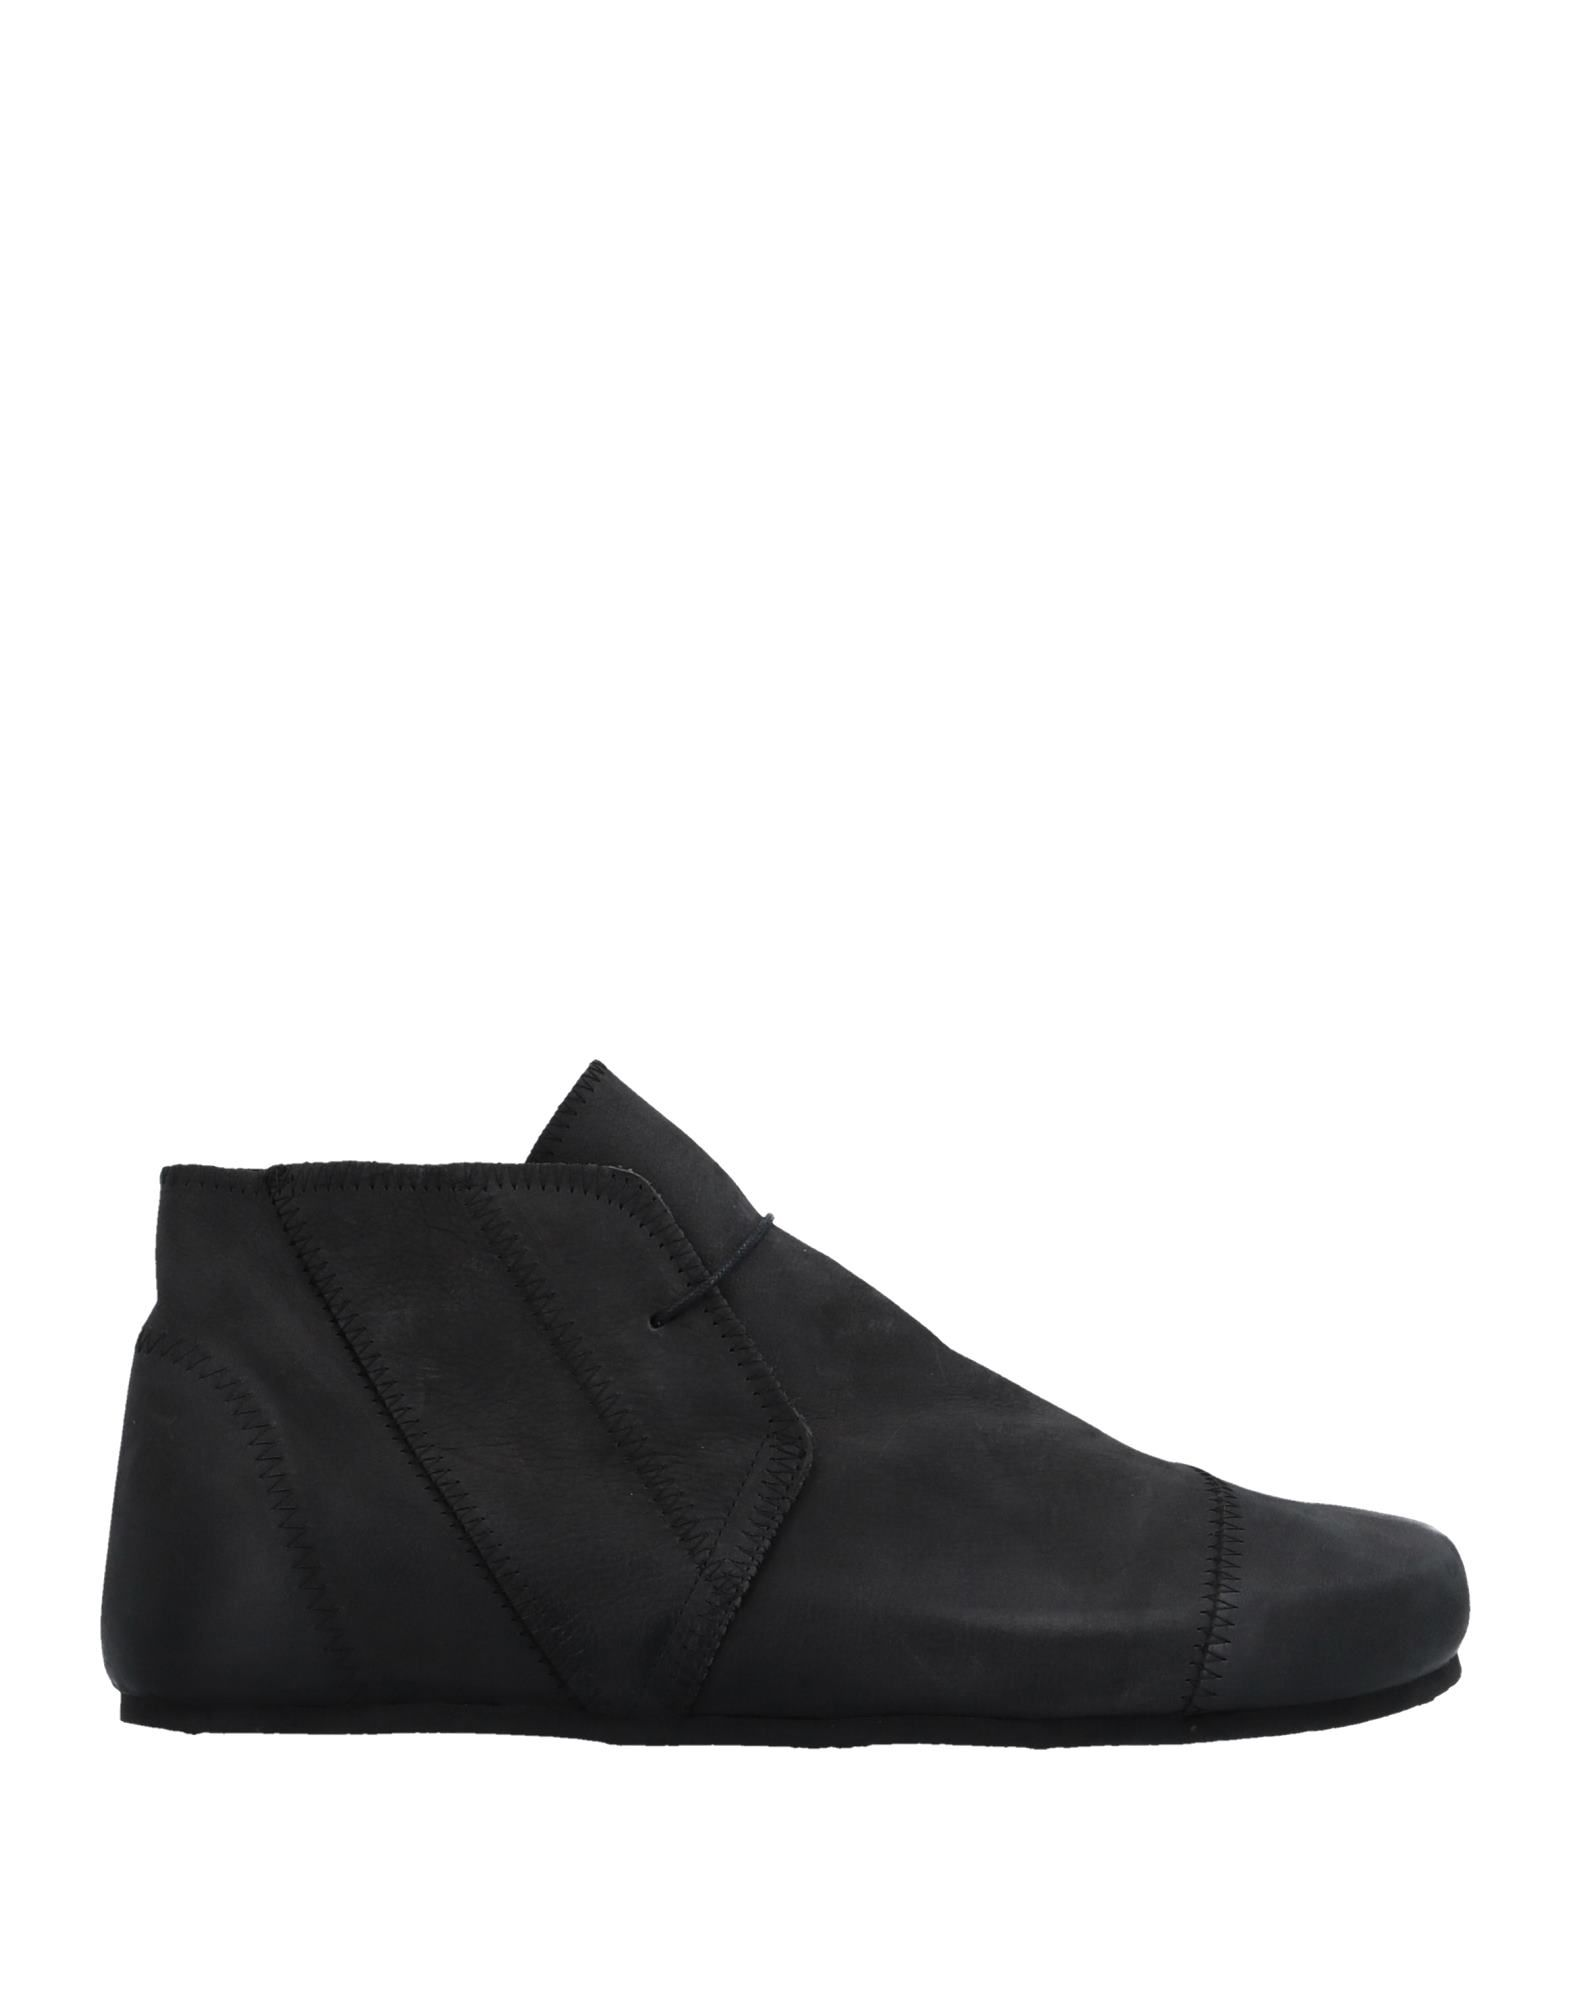 PETER NON | PETER NON Ankle boots 11508781 | Goxip